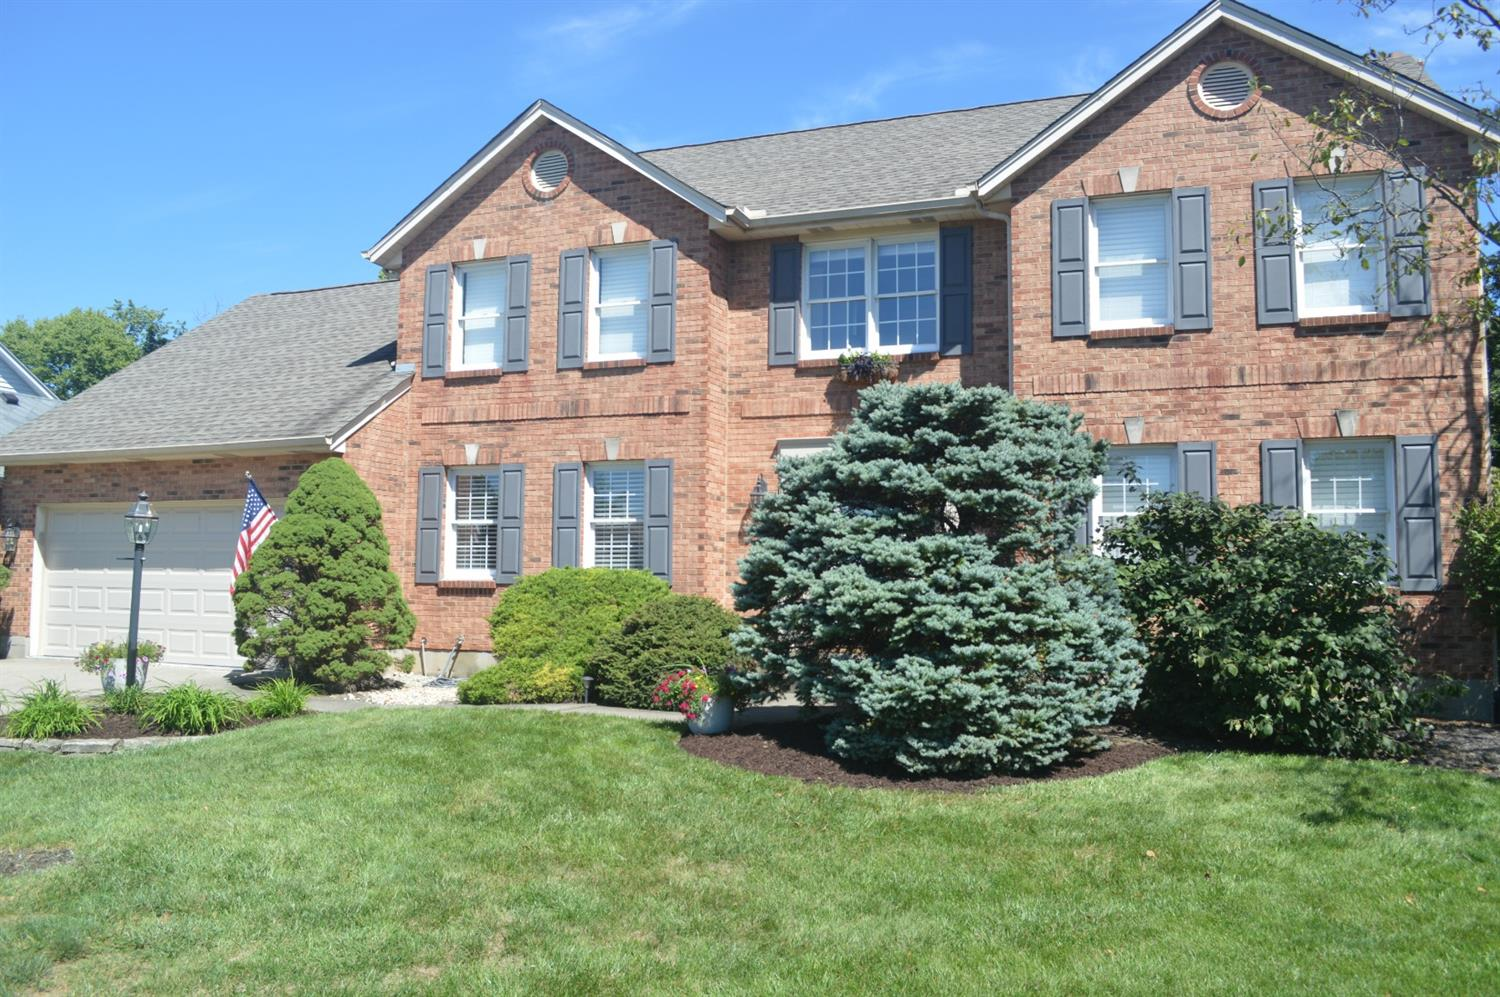 Property for sale at 7189 Pinemill Drive, West Chester,  Ohio 45069